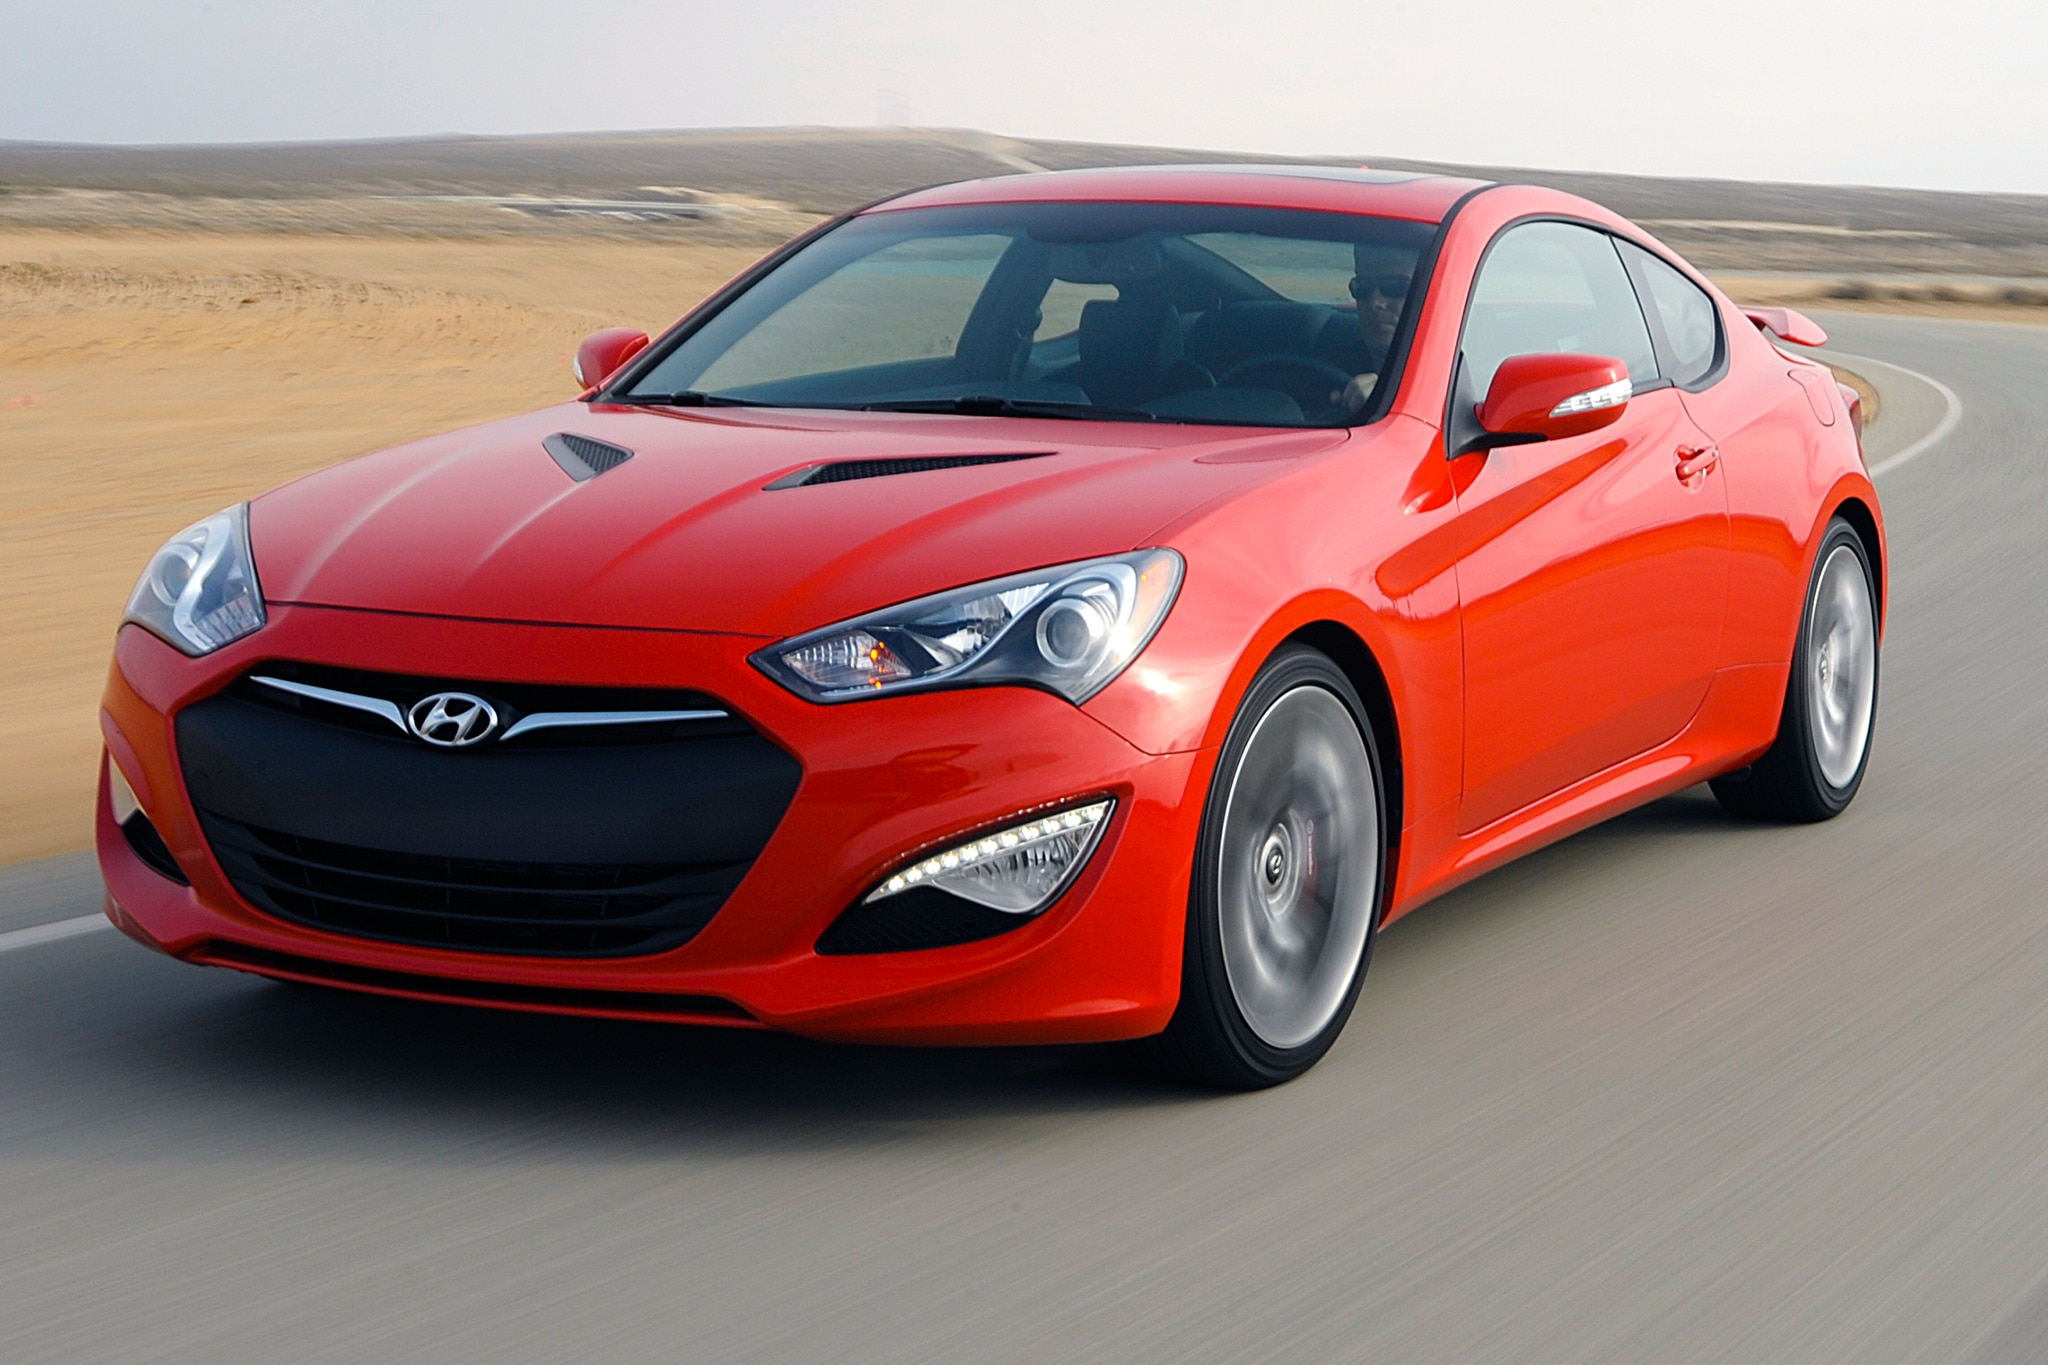 hyundai genesis coupe - photo #30